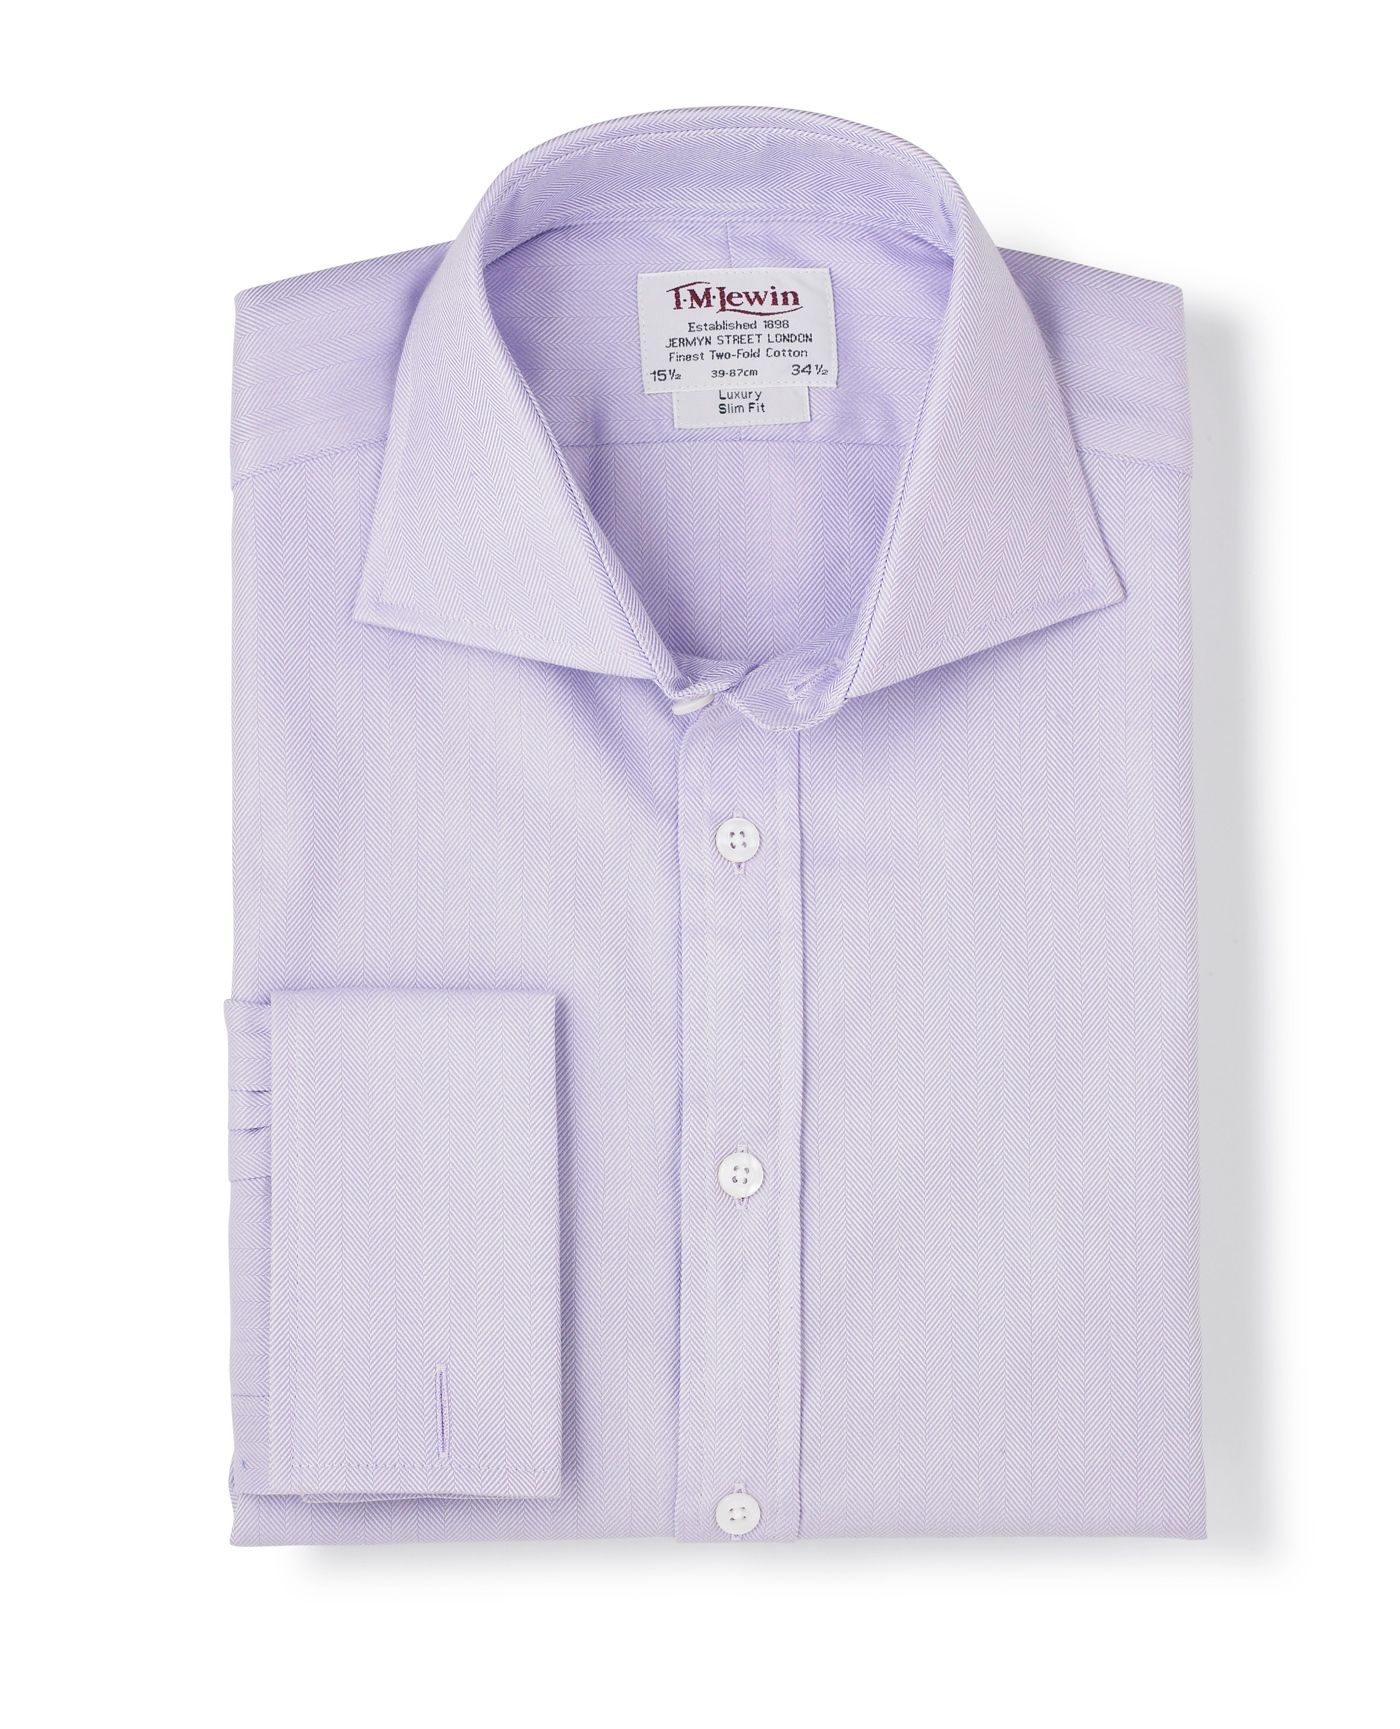 Luxury lilac shirt